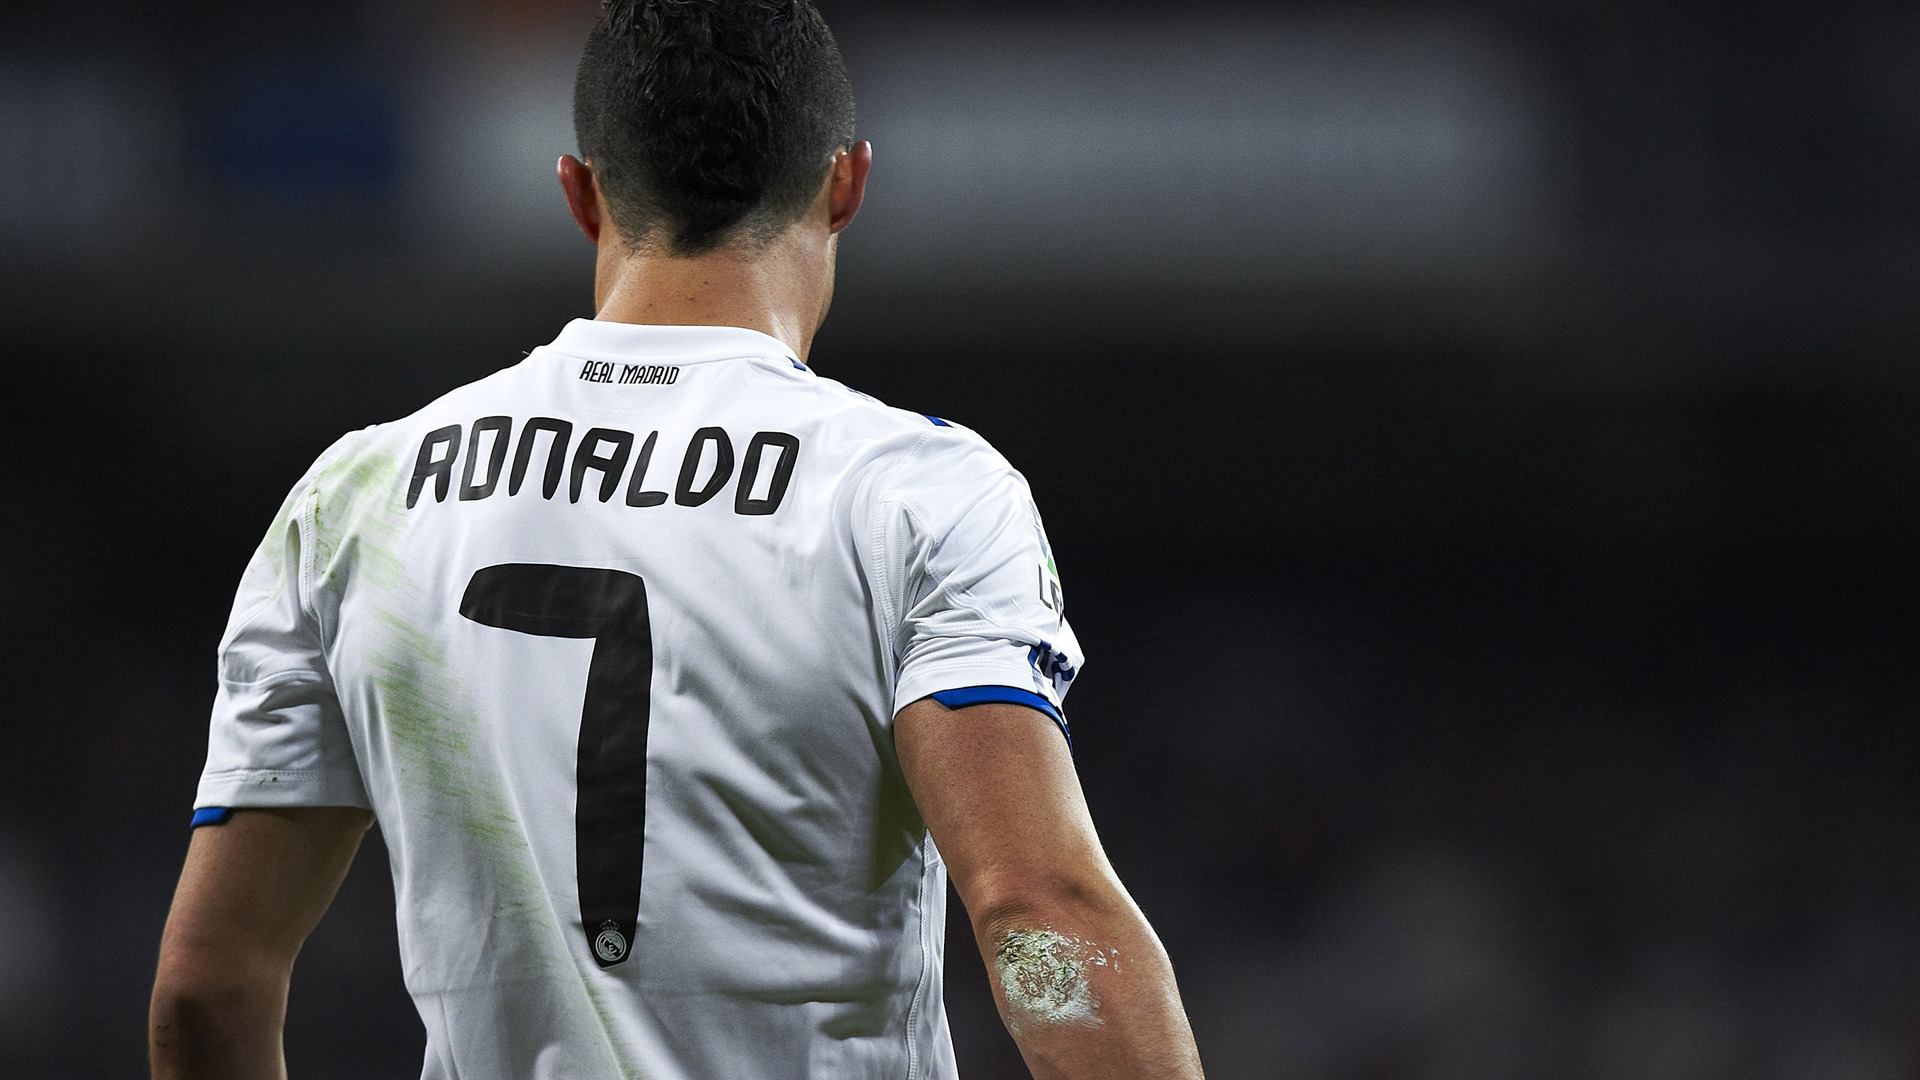 cristiano ronaldo hd wallpapers - cr7 best photos sporteology